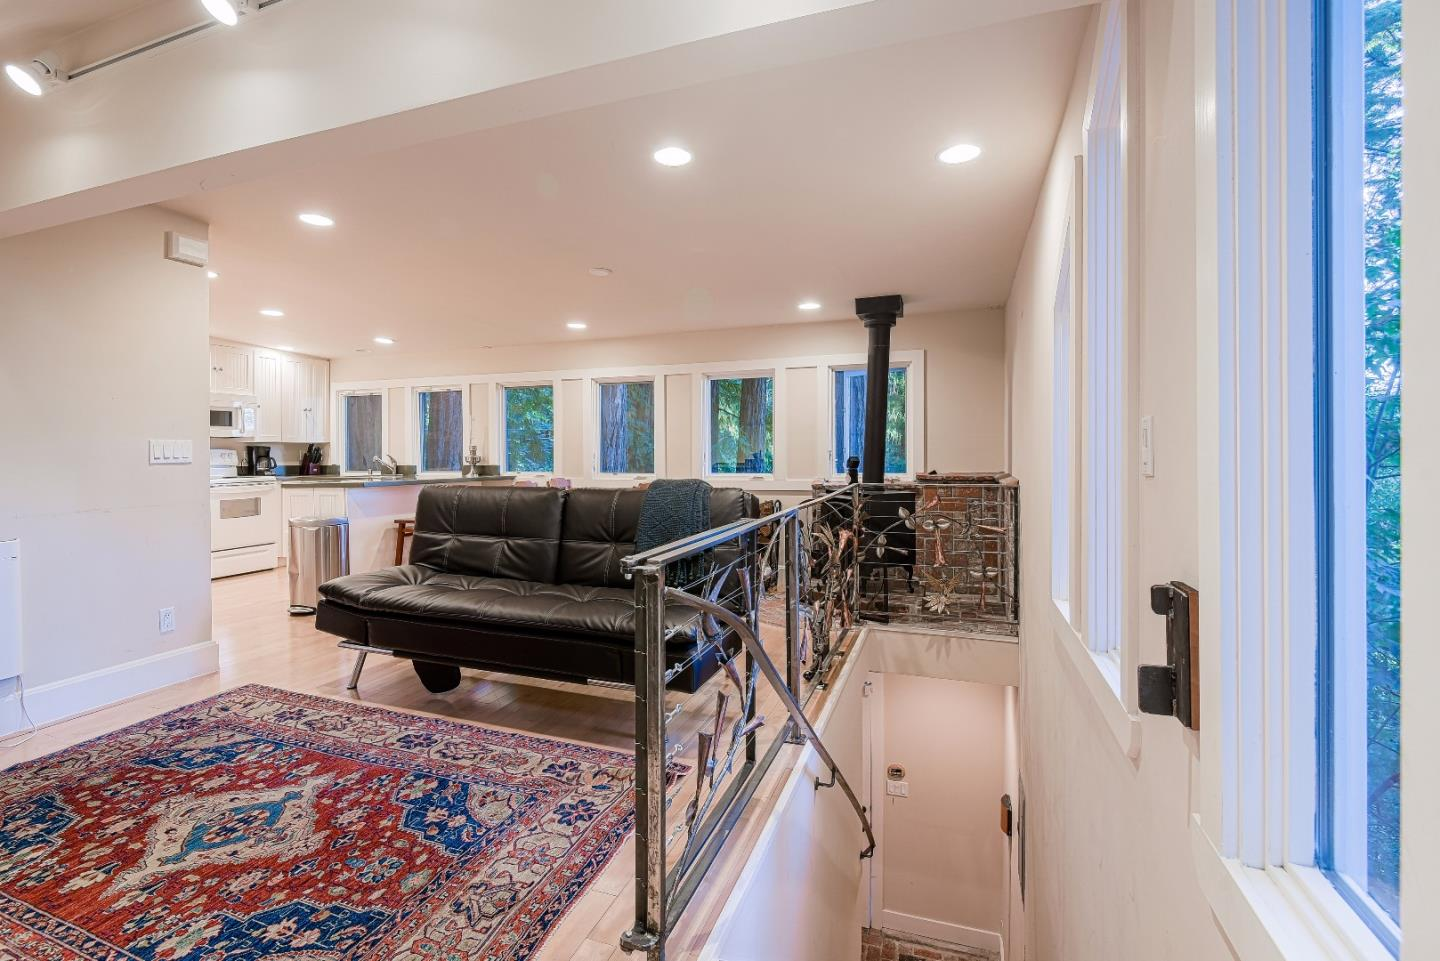 Additional photo for property listing at 17507 Skyline Blvd  WOODSIDE, CALIFORNIA 94062